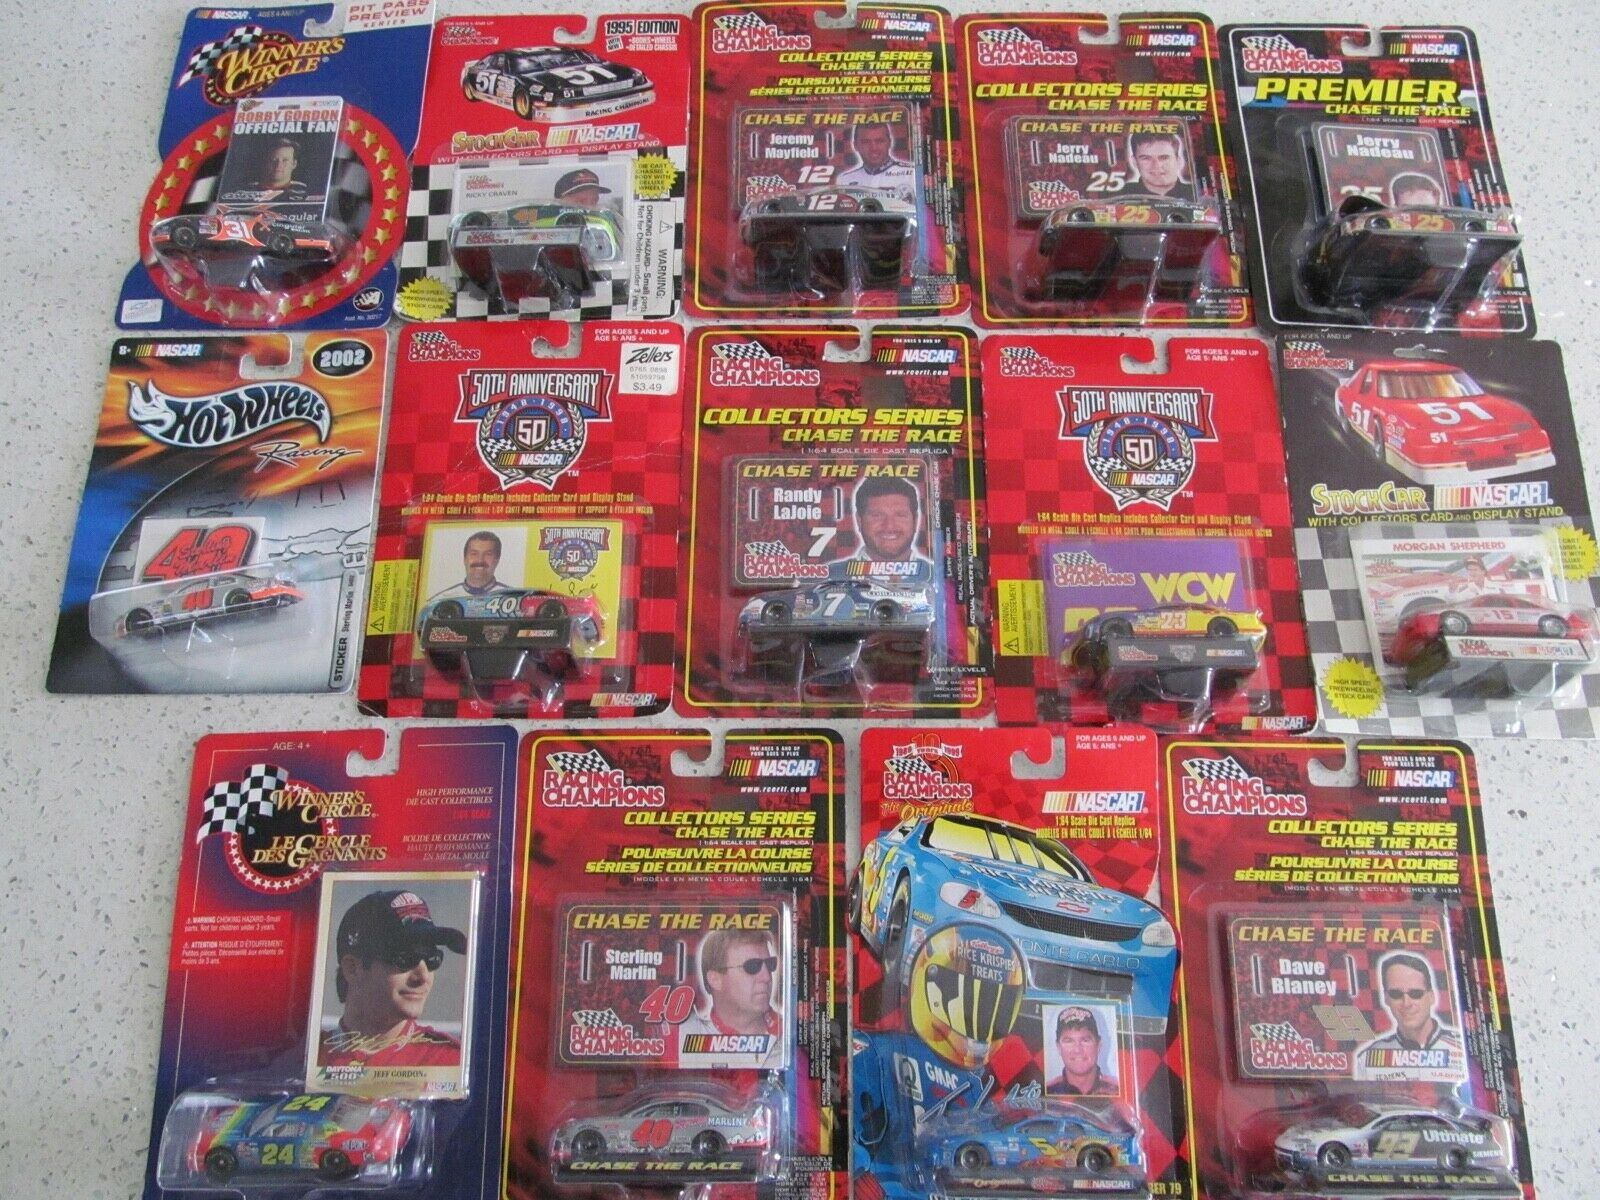 Racing Champions Winners Circle Hot Wheels Nascar 1 64 Scale Die Cast Lot of 14